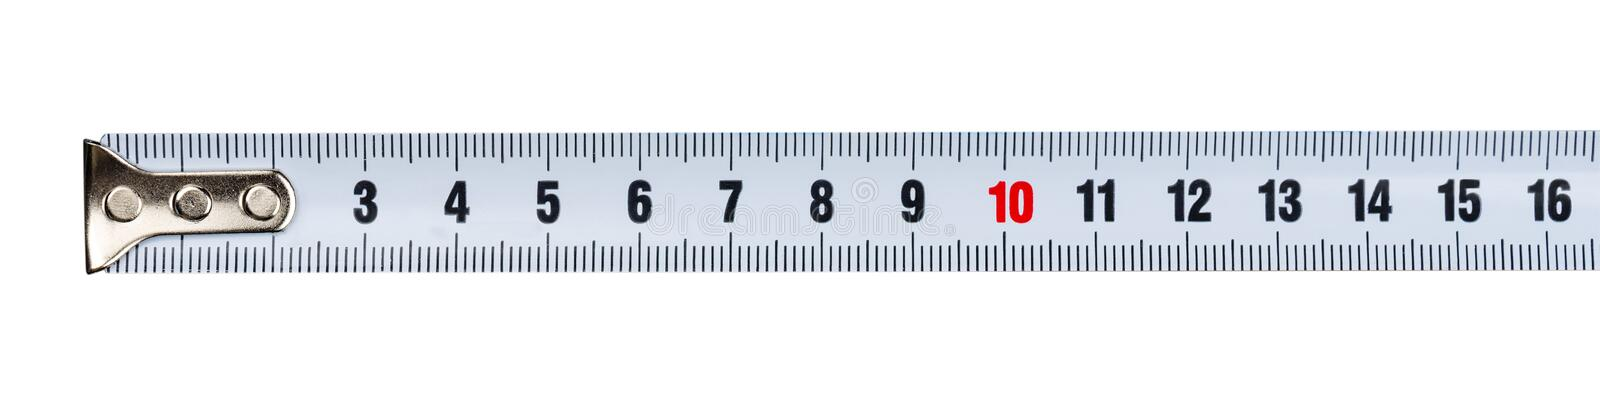 Part of a measuring tape royalty free stock photos